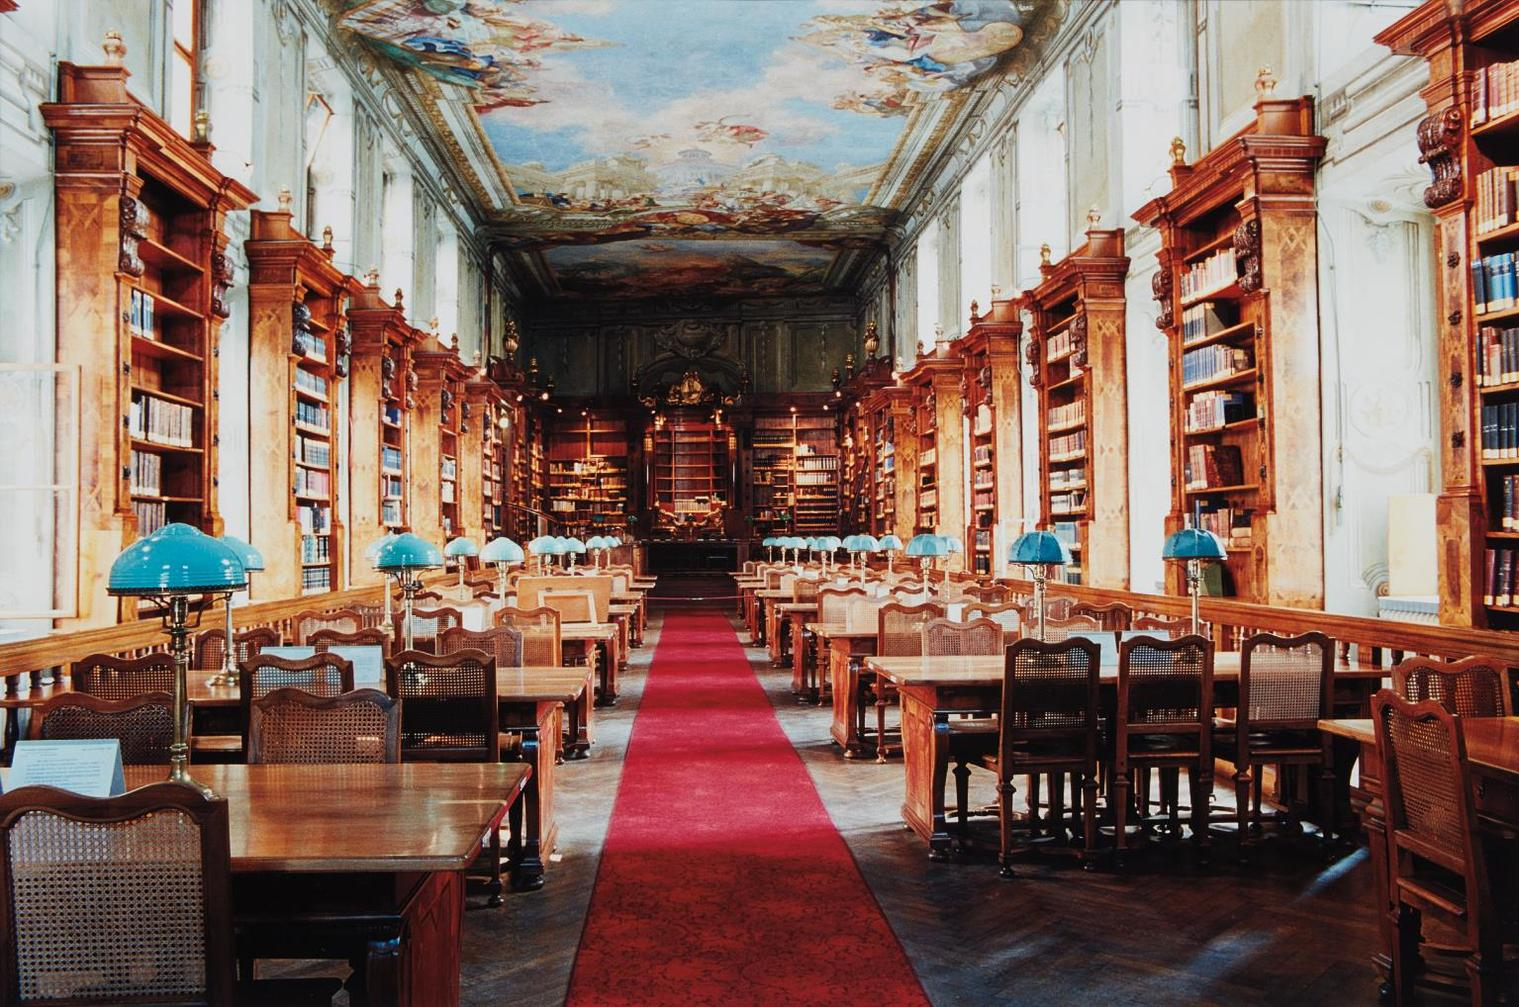 Candida Hofer-Nationalbibliothek Wien I-1995